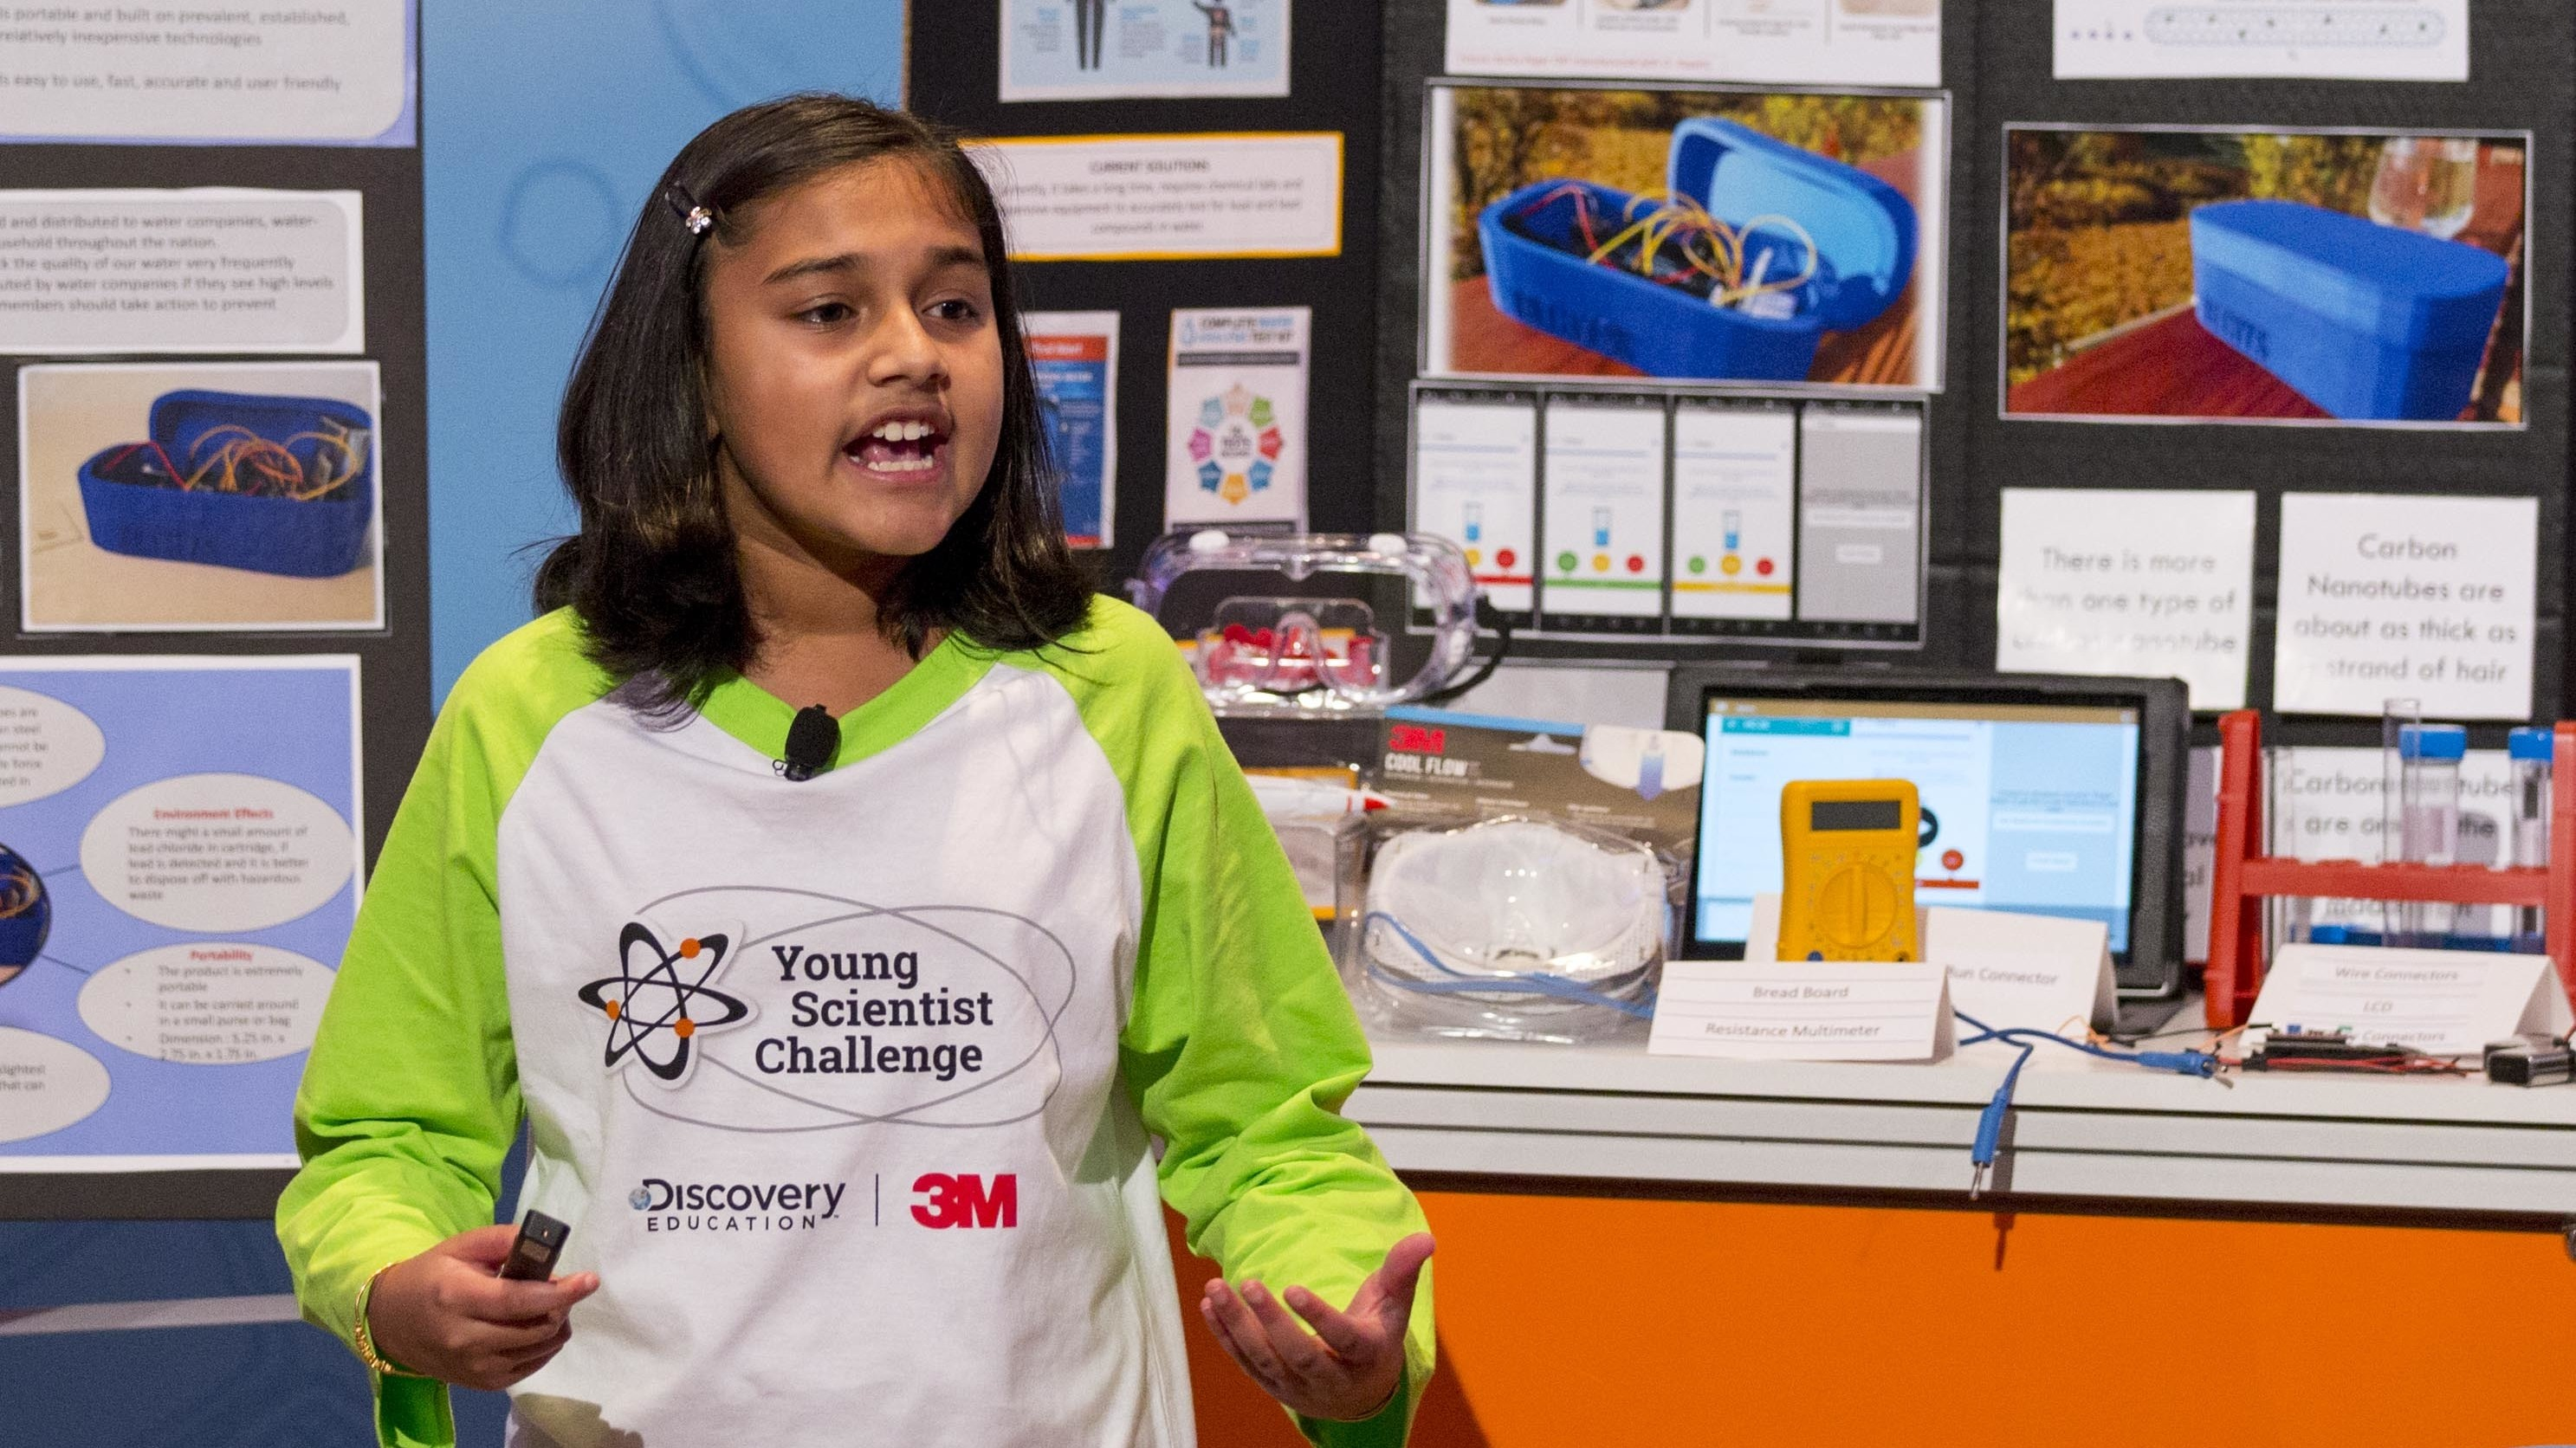 npr.org - Laurel Wamsley - Troubled By Flint Water Crisis, 11-Year-Old Girl Invents Lead-Detecting Device